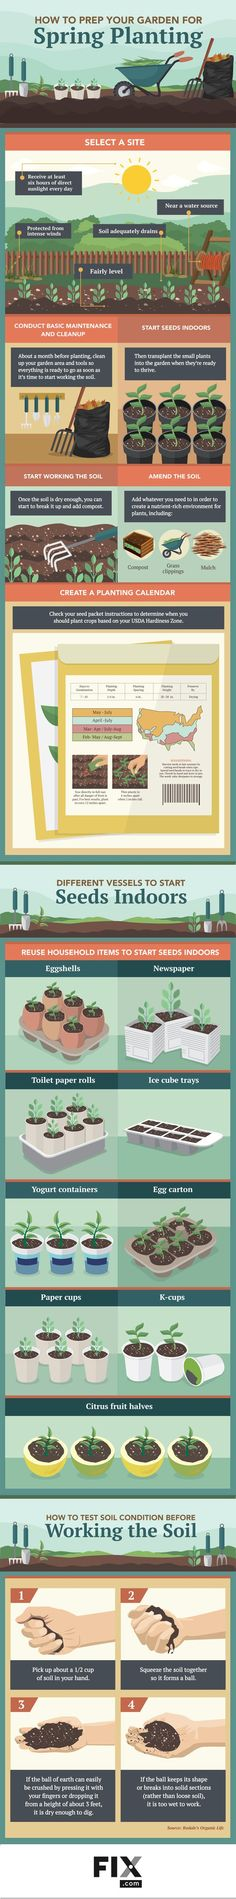 Learn how preparing your garden for spring planting will make all the difference to your harvest yields this year!